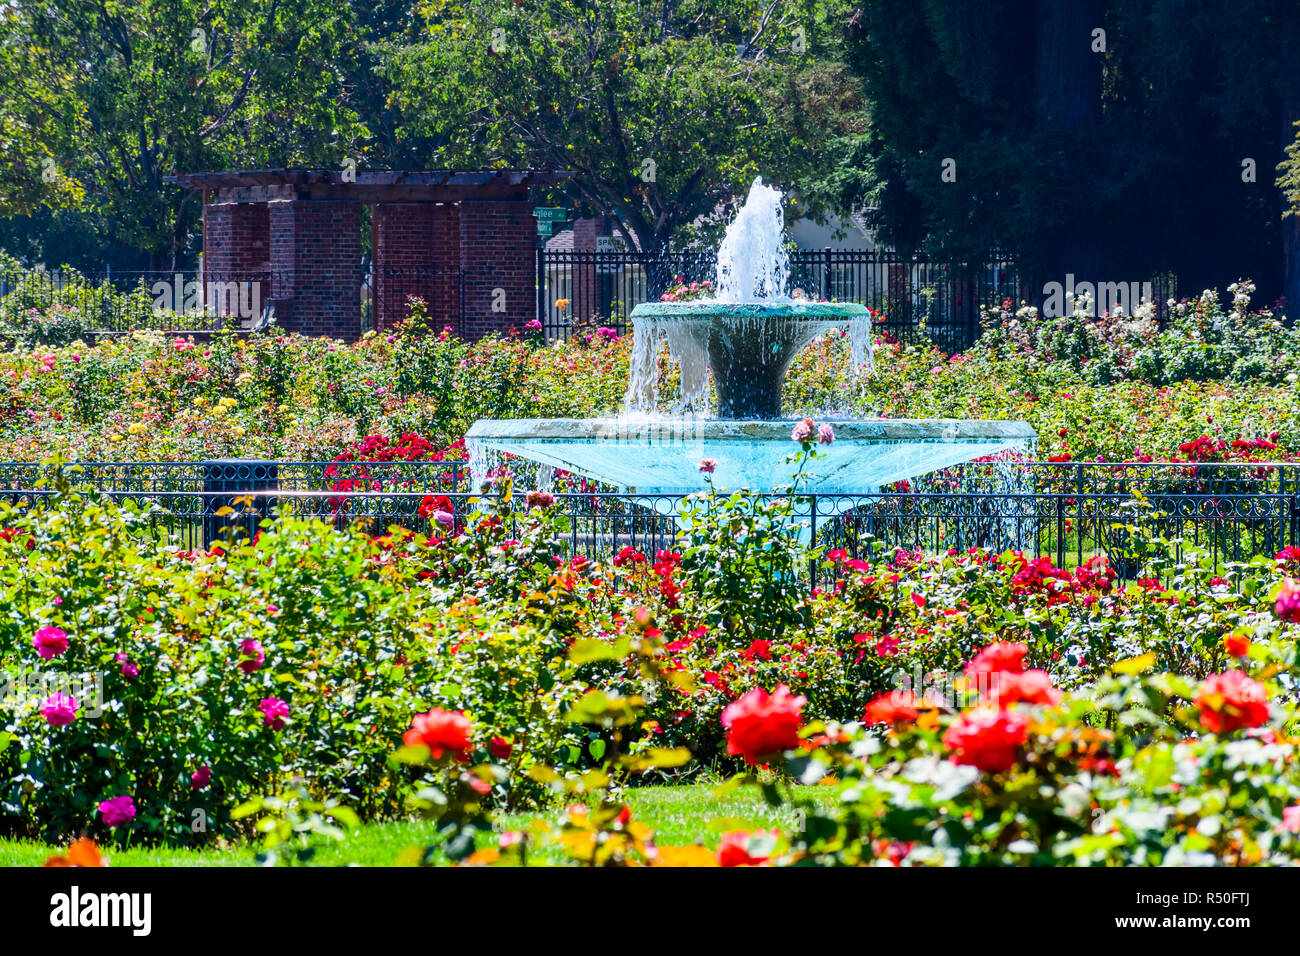 Water Fountain Surrounded By Beautiful Roses The Municipal Rose